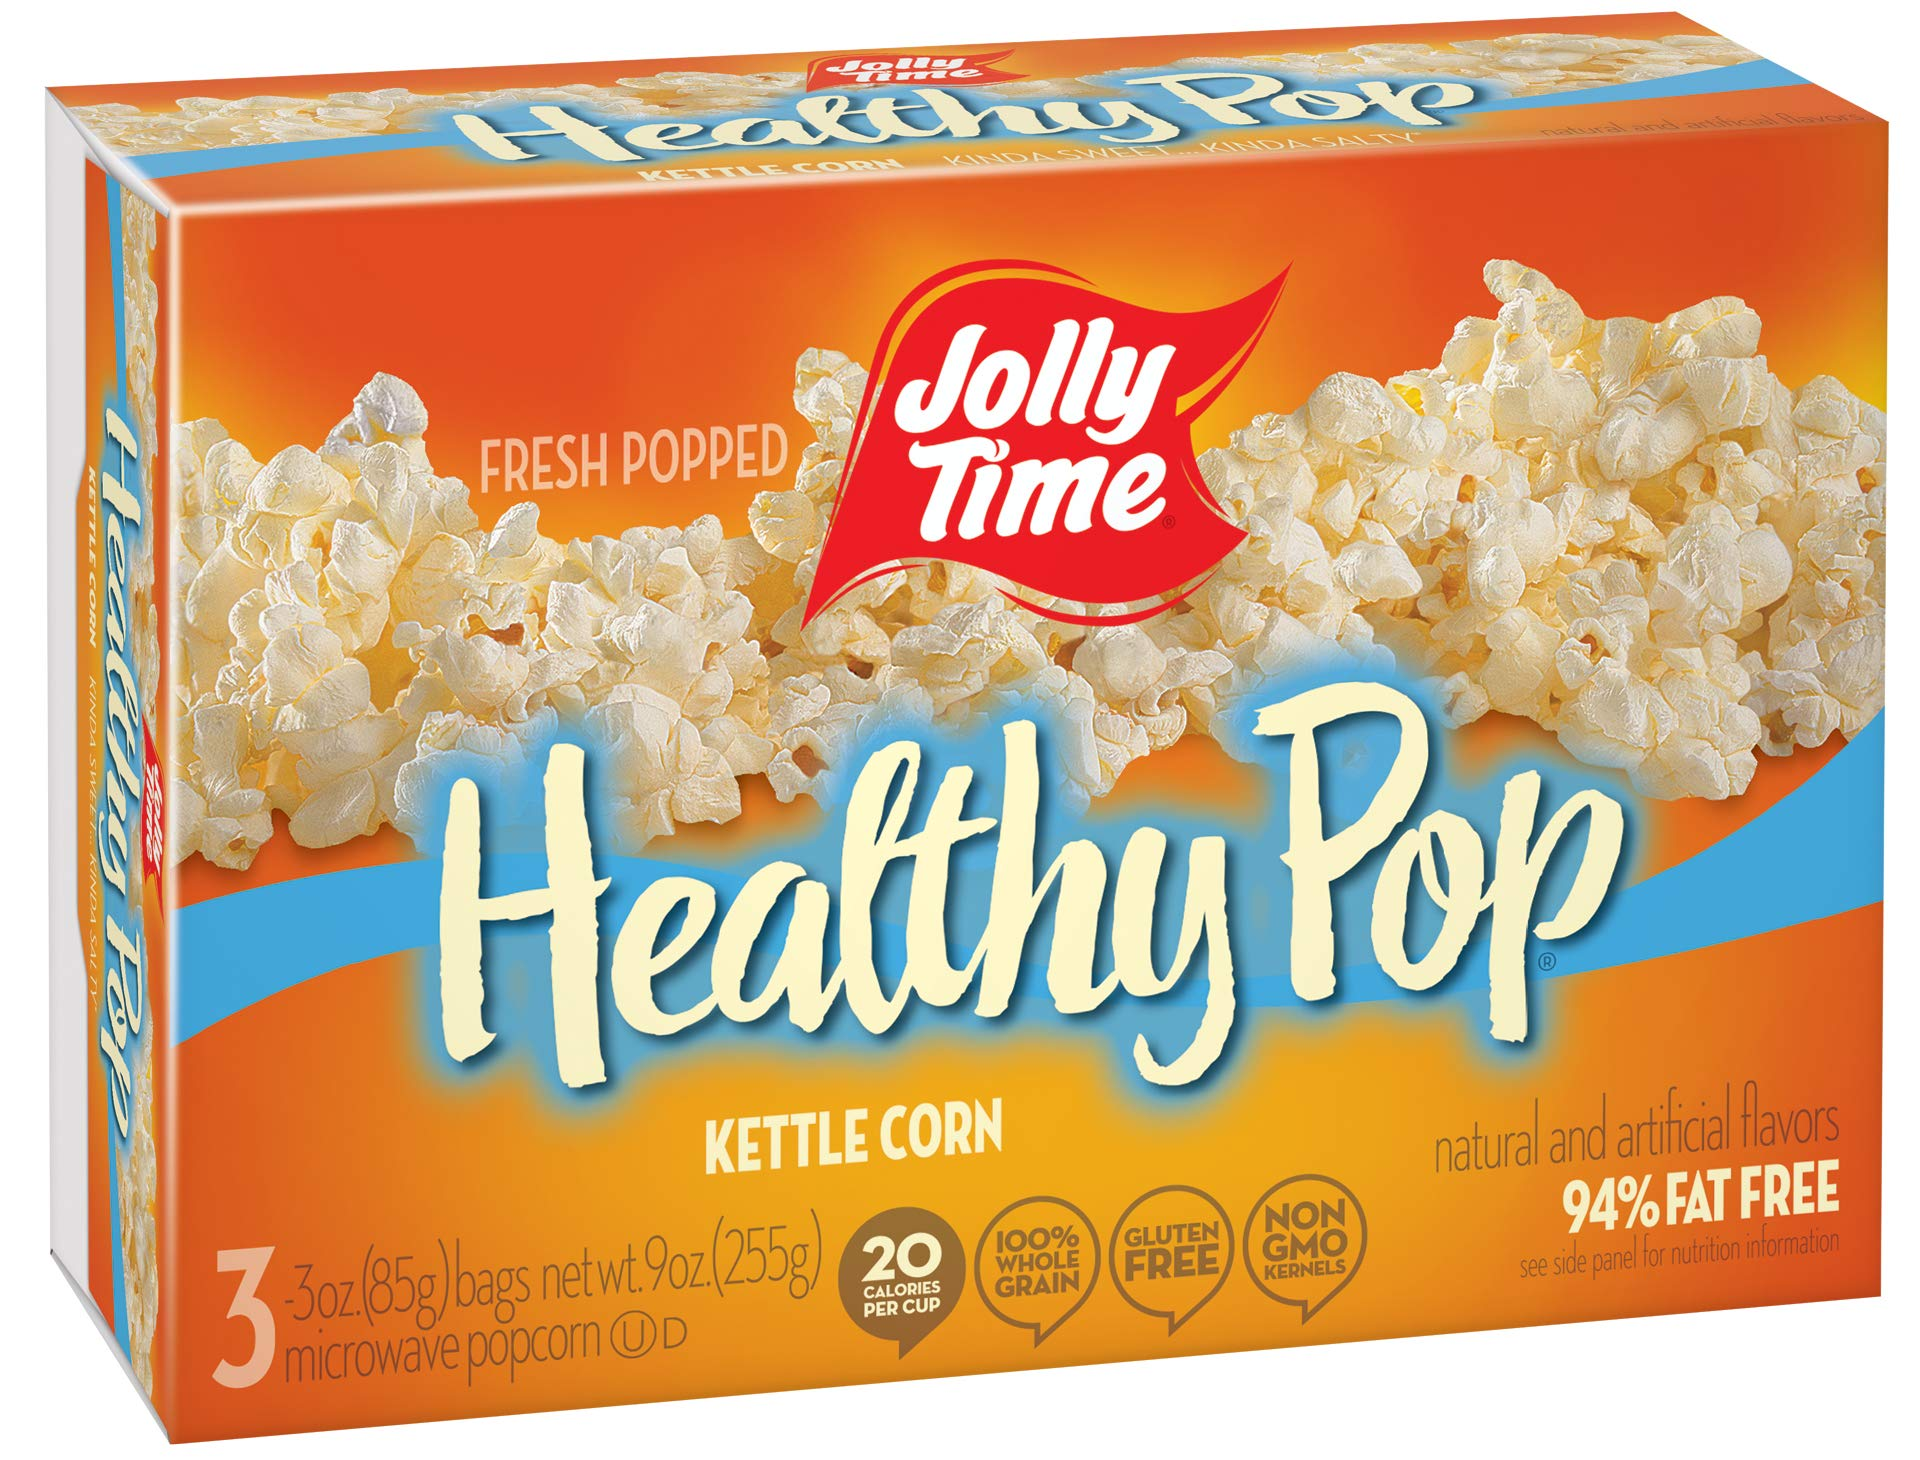 Jolly Time Healthy Pop Kettle Corn - 94% Fat Free Weight Watchers Microwave Popcorn, 3-Count Boxes, 9 oz, (Pack of 12)